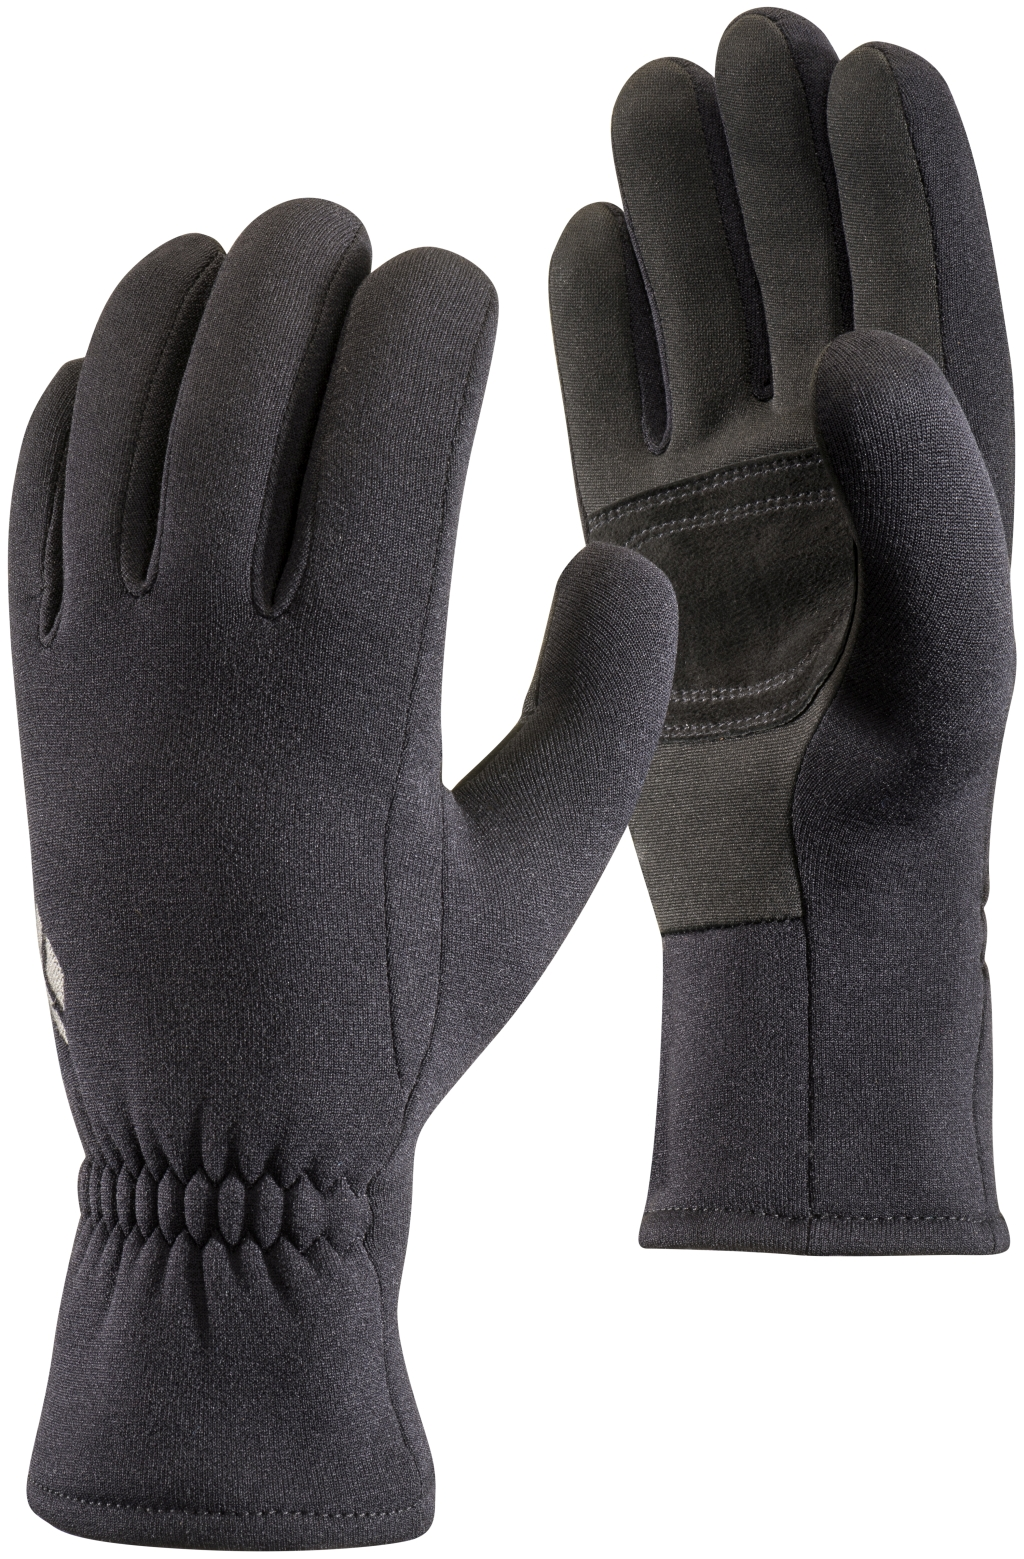 Black Diamond Midweight Screentap Fleece Gloves Black-30